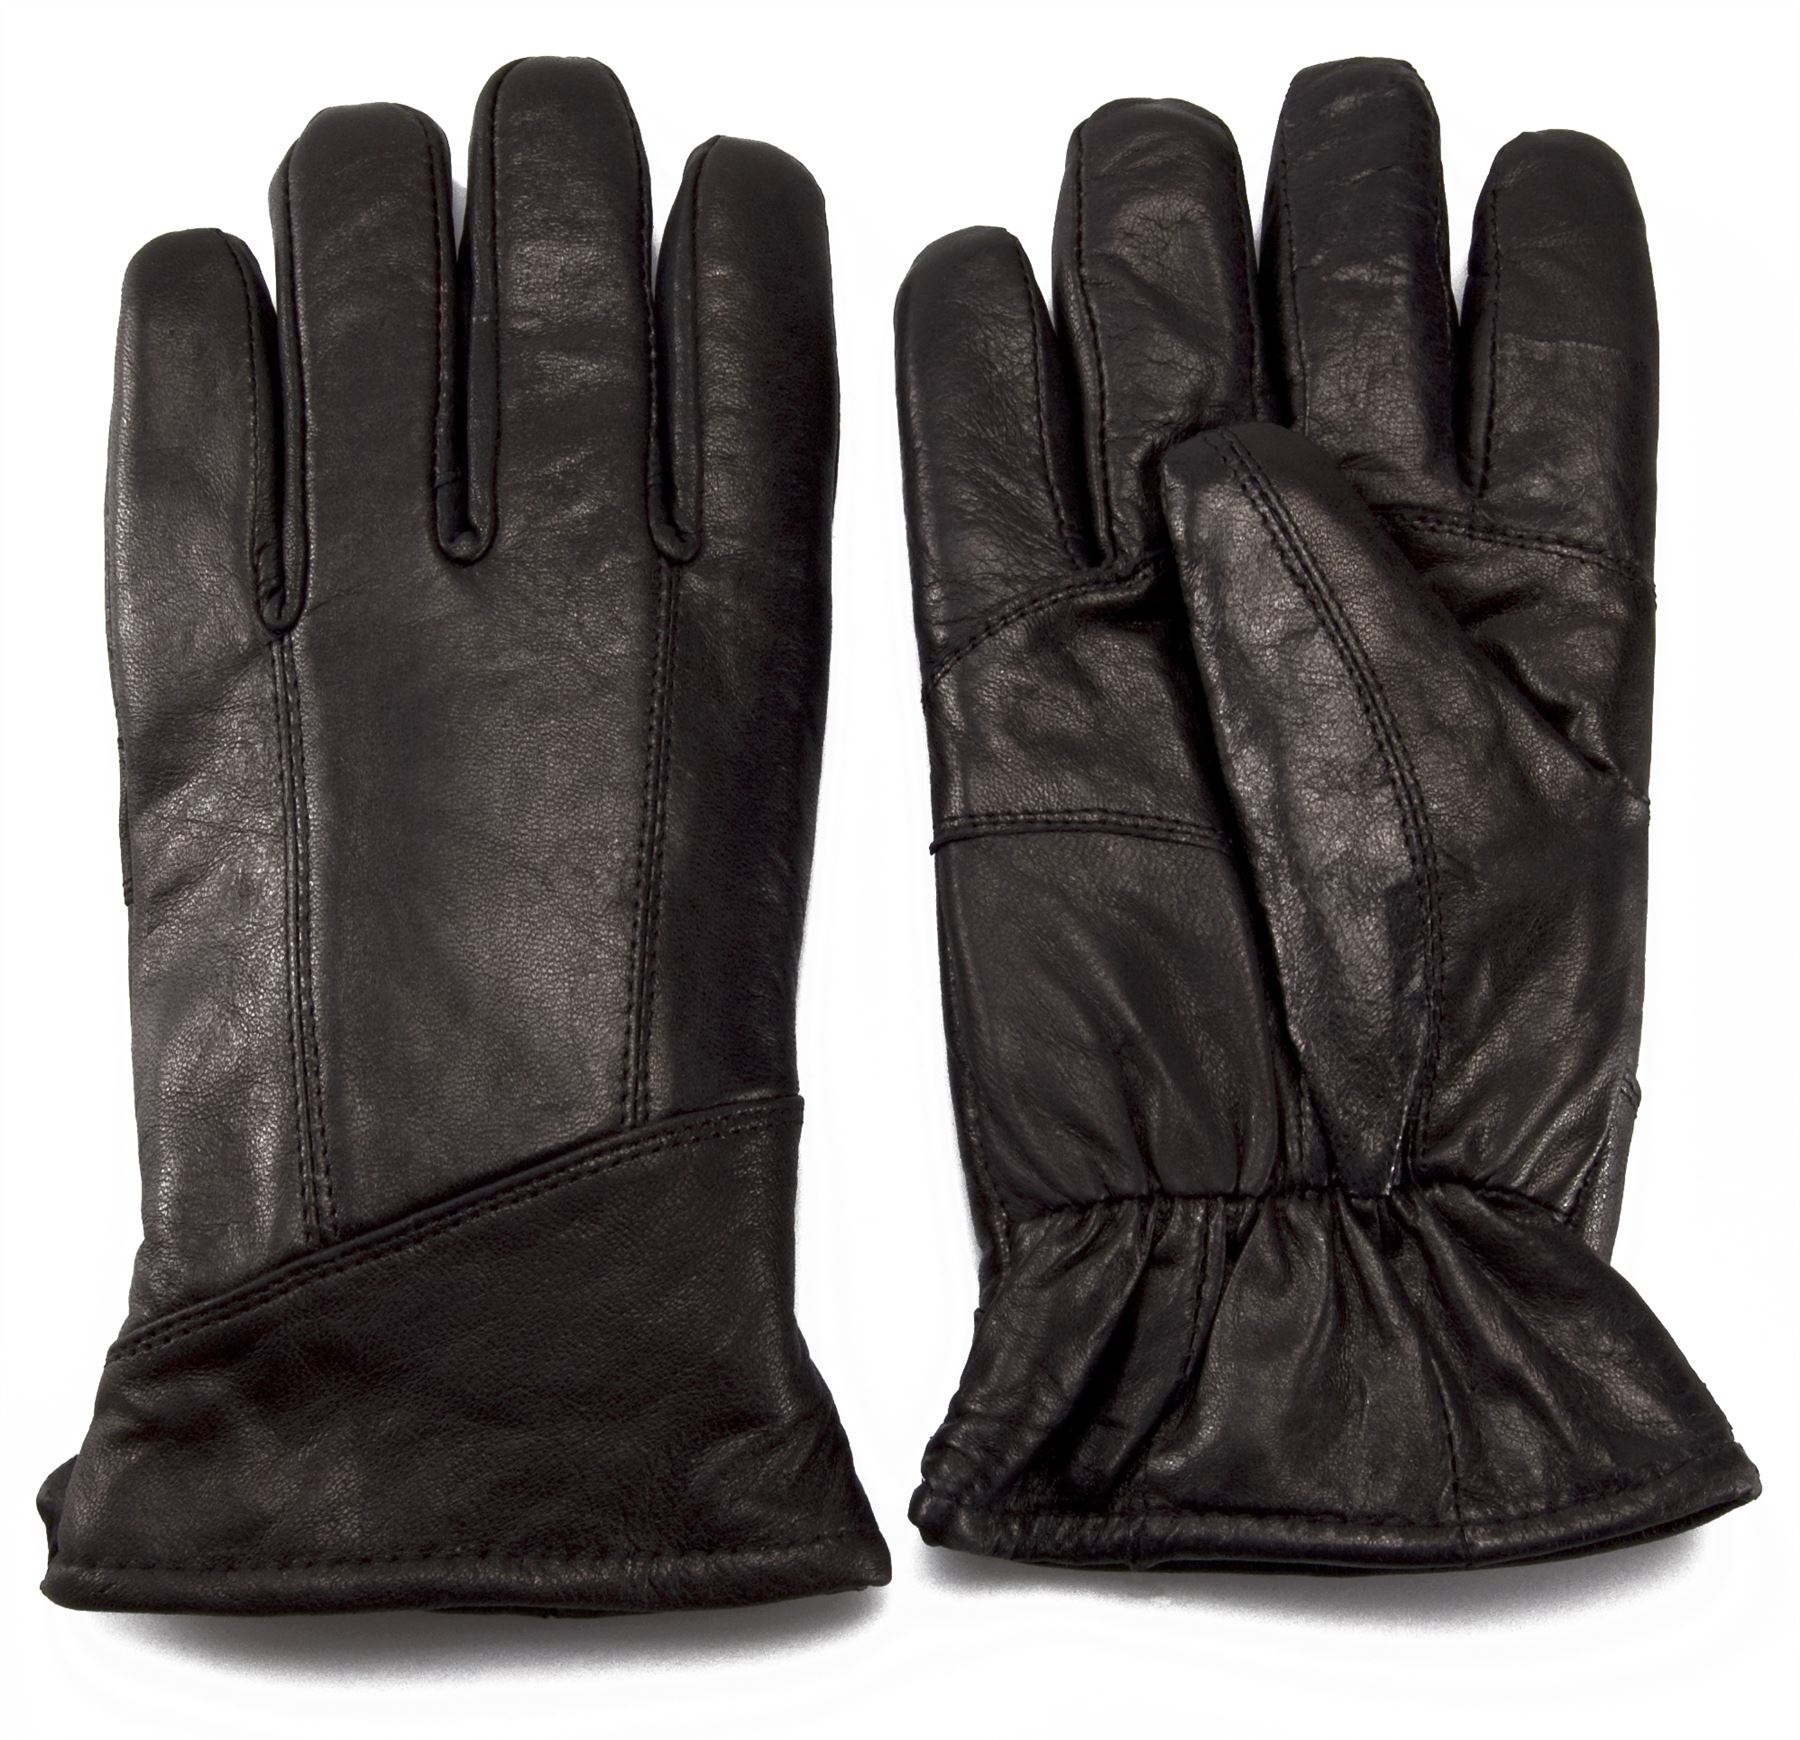 Mens leather gloves black friday - Nordvek Mens Sheepskin Lined Black Real Leather Gloves